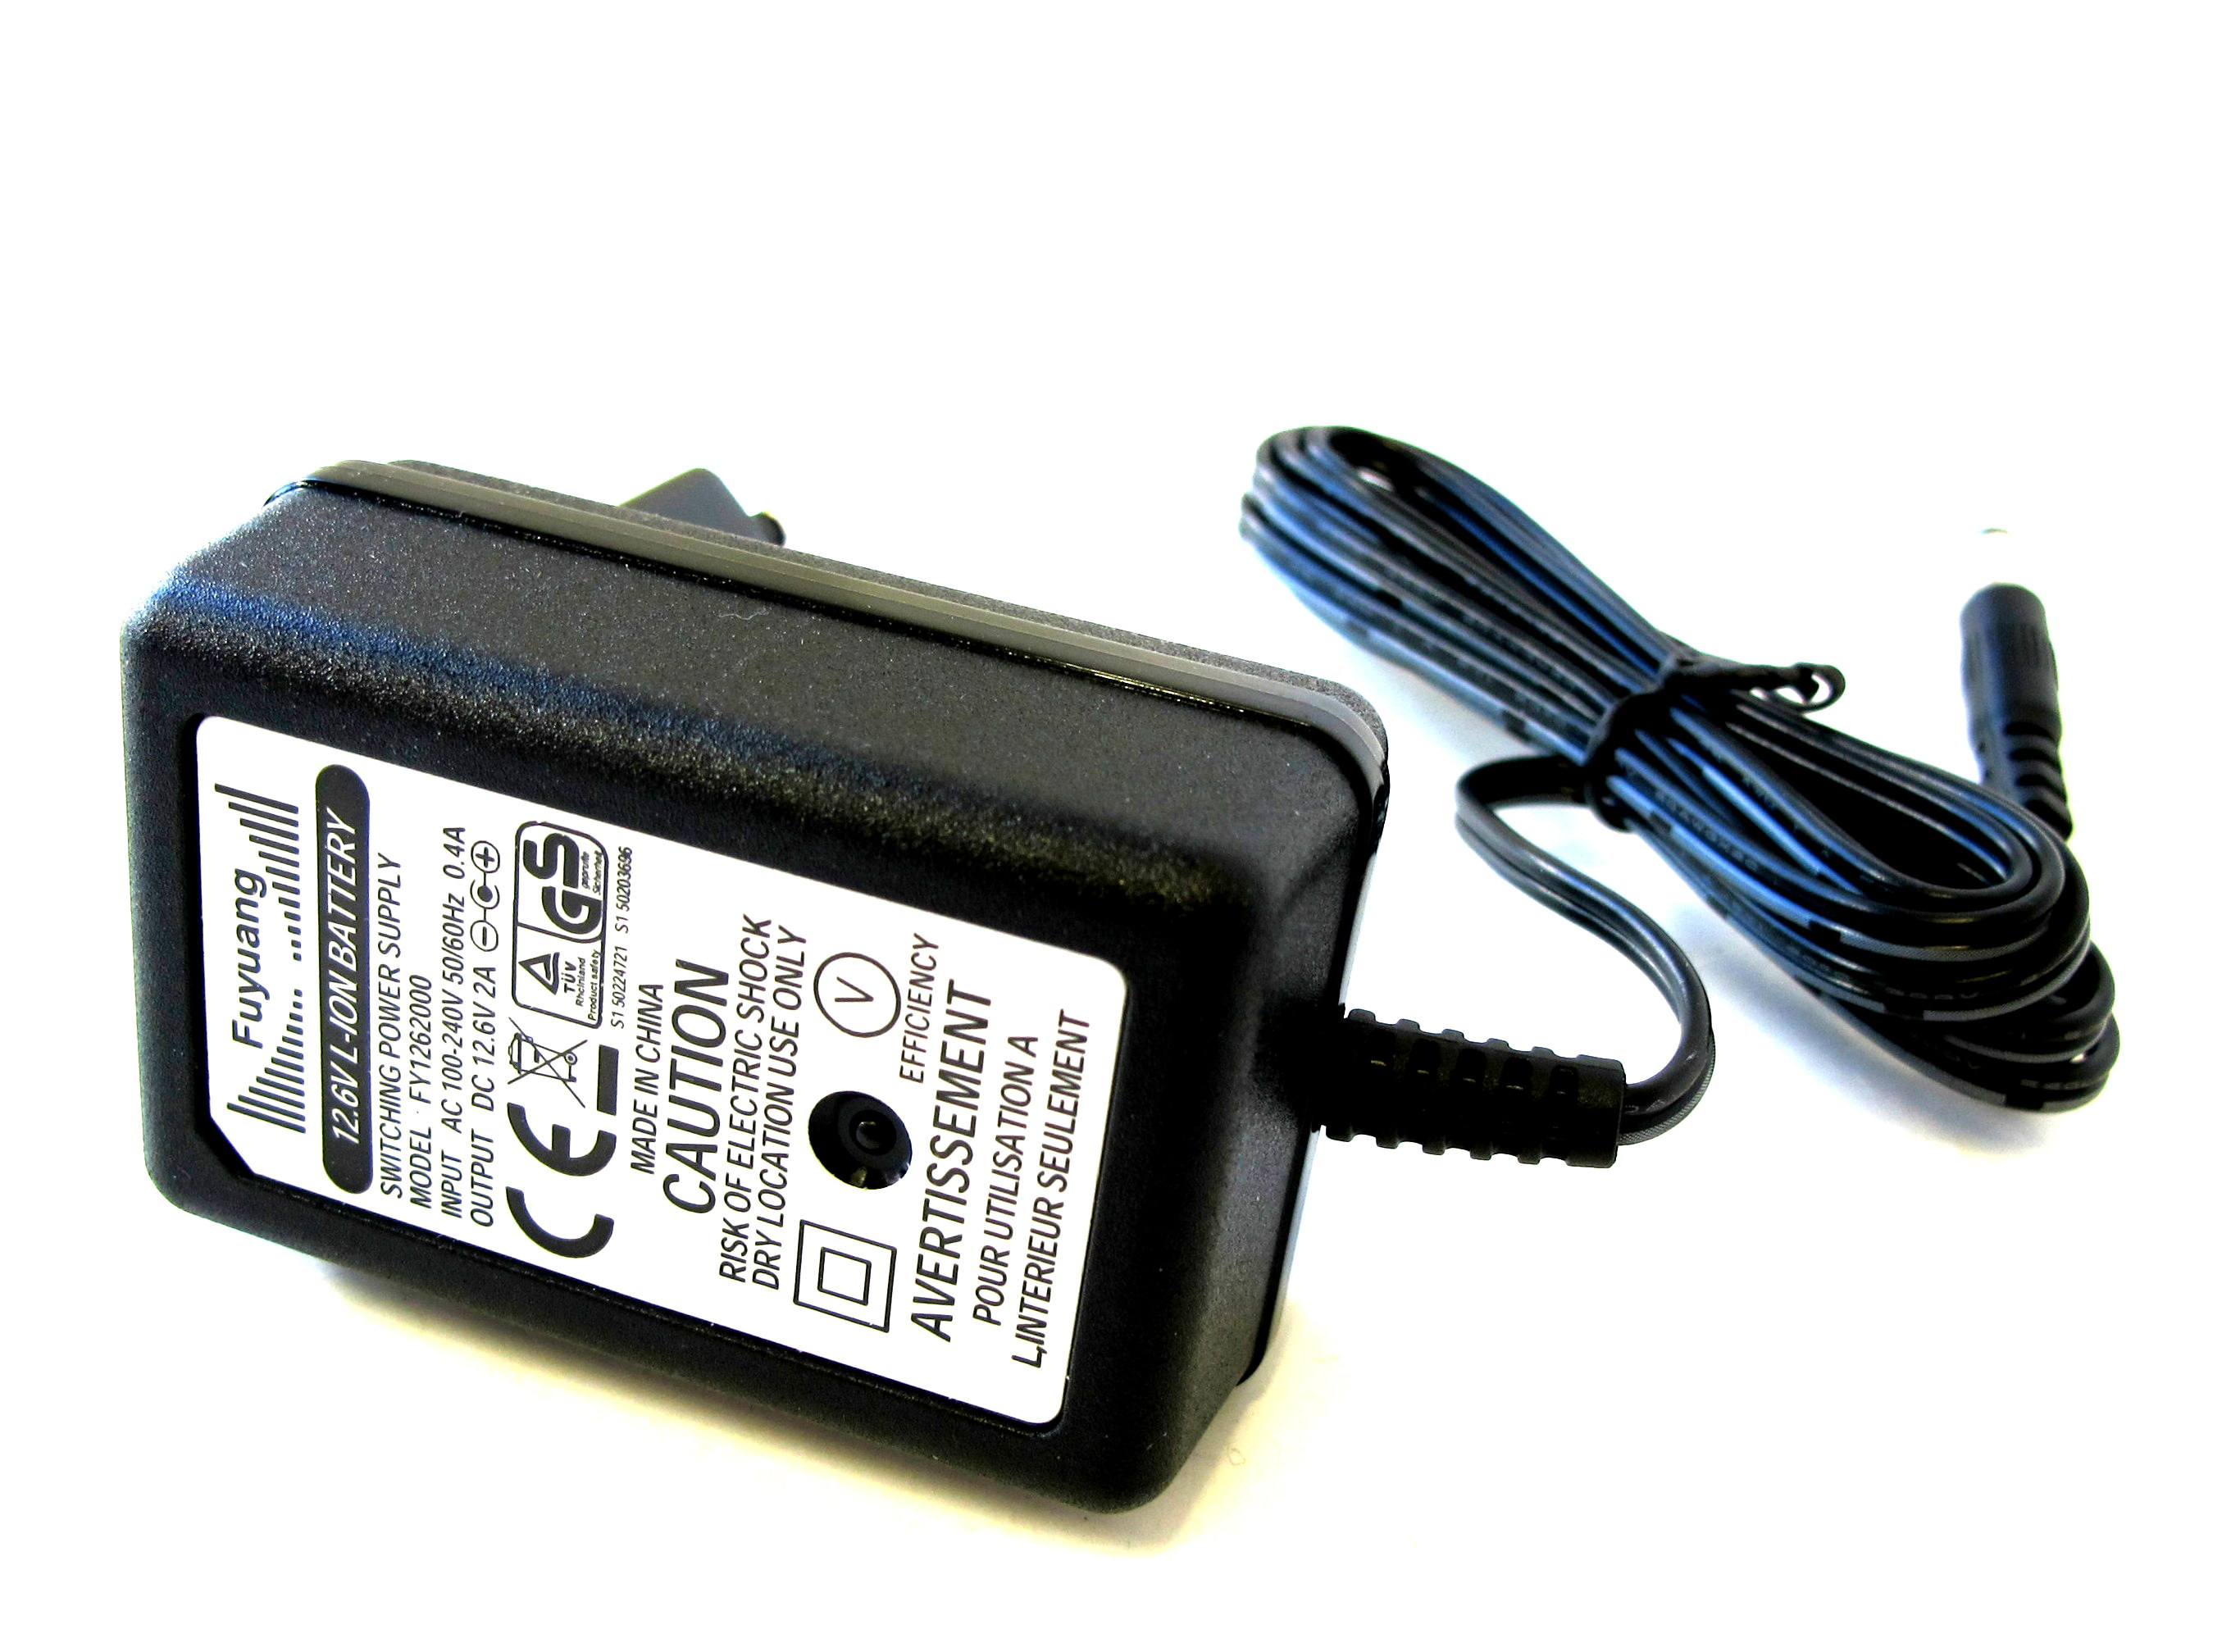 Enerpower FY0902000 2S (8.4V) Li-Ion charger 1.8A DC Plug